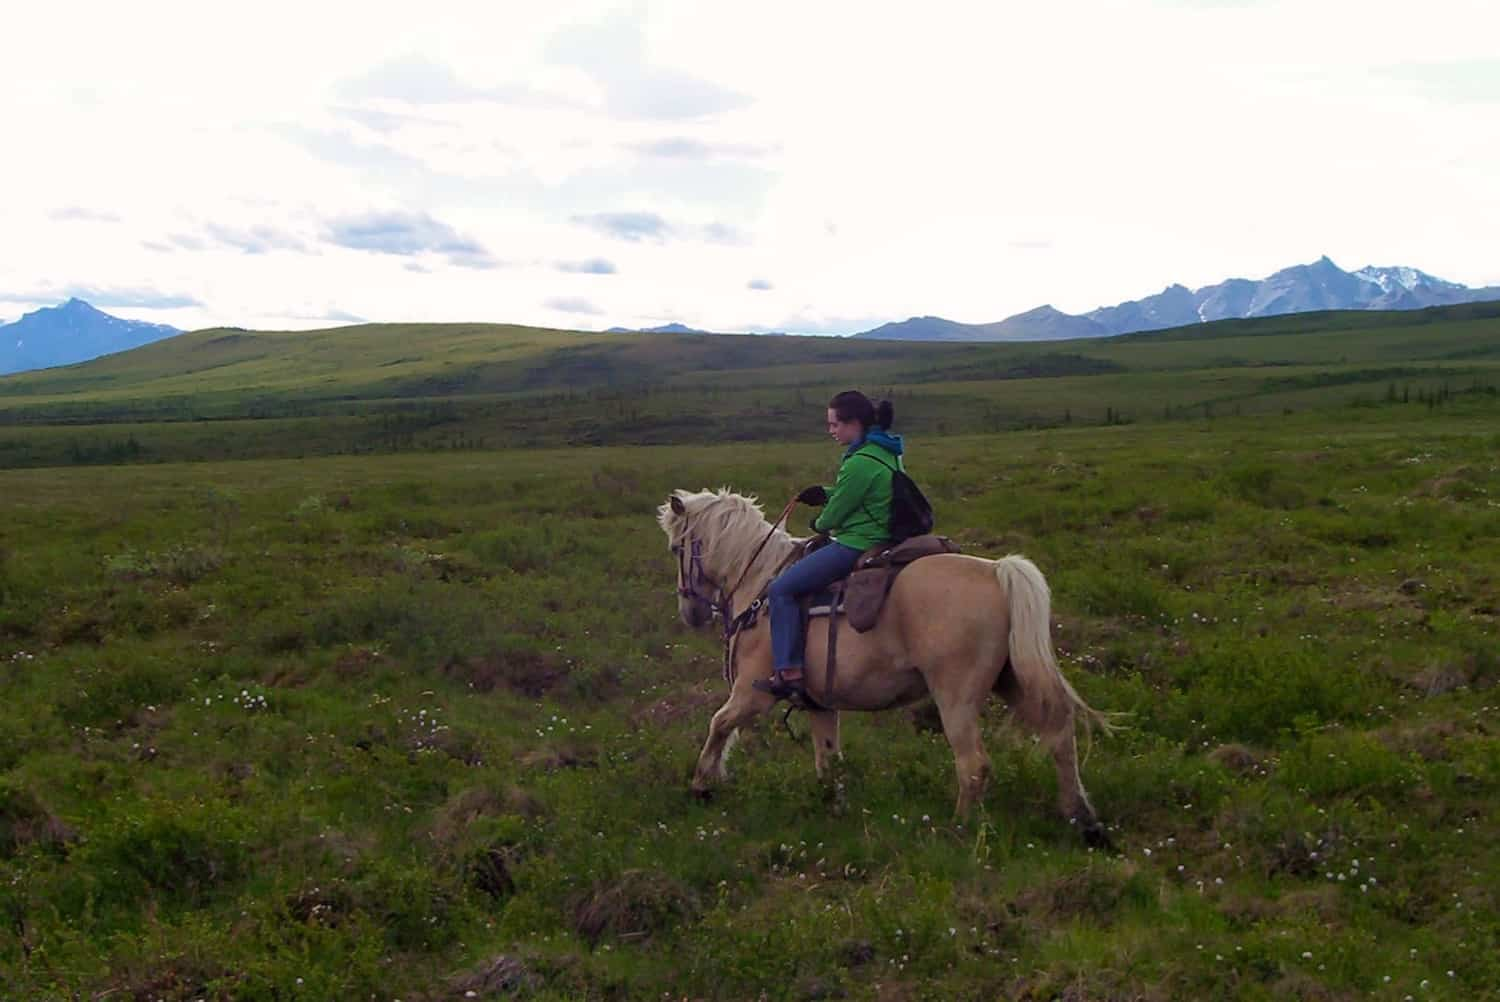 Pack for Alaska- Valerie on Horse